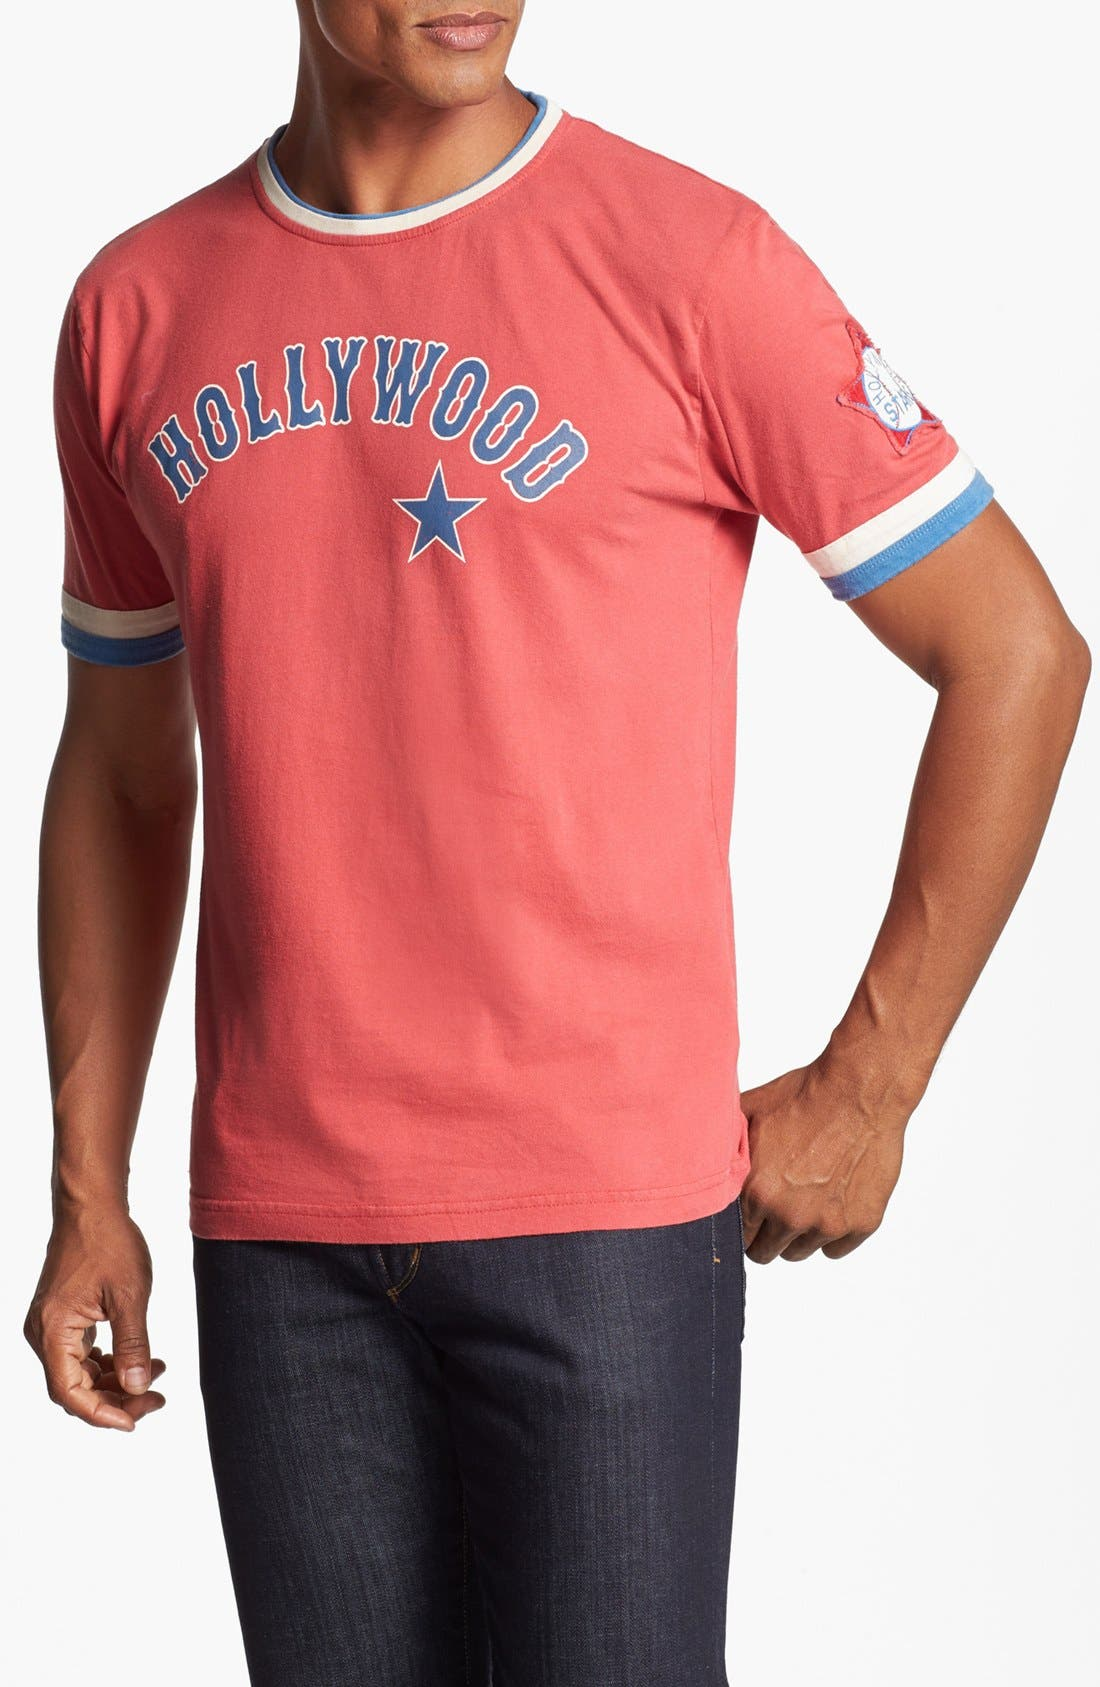 Alternate Image 1 Selected - Red Jacket 'Hollywood Stars - Remote Control' T-Shirt